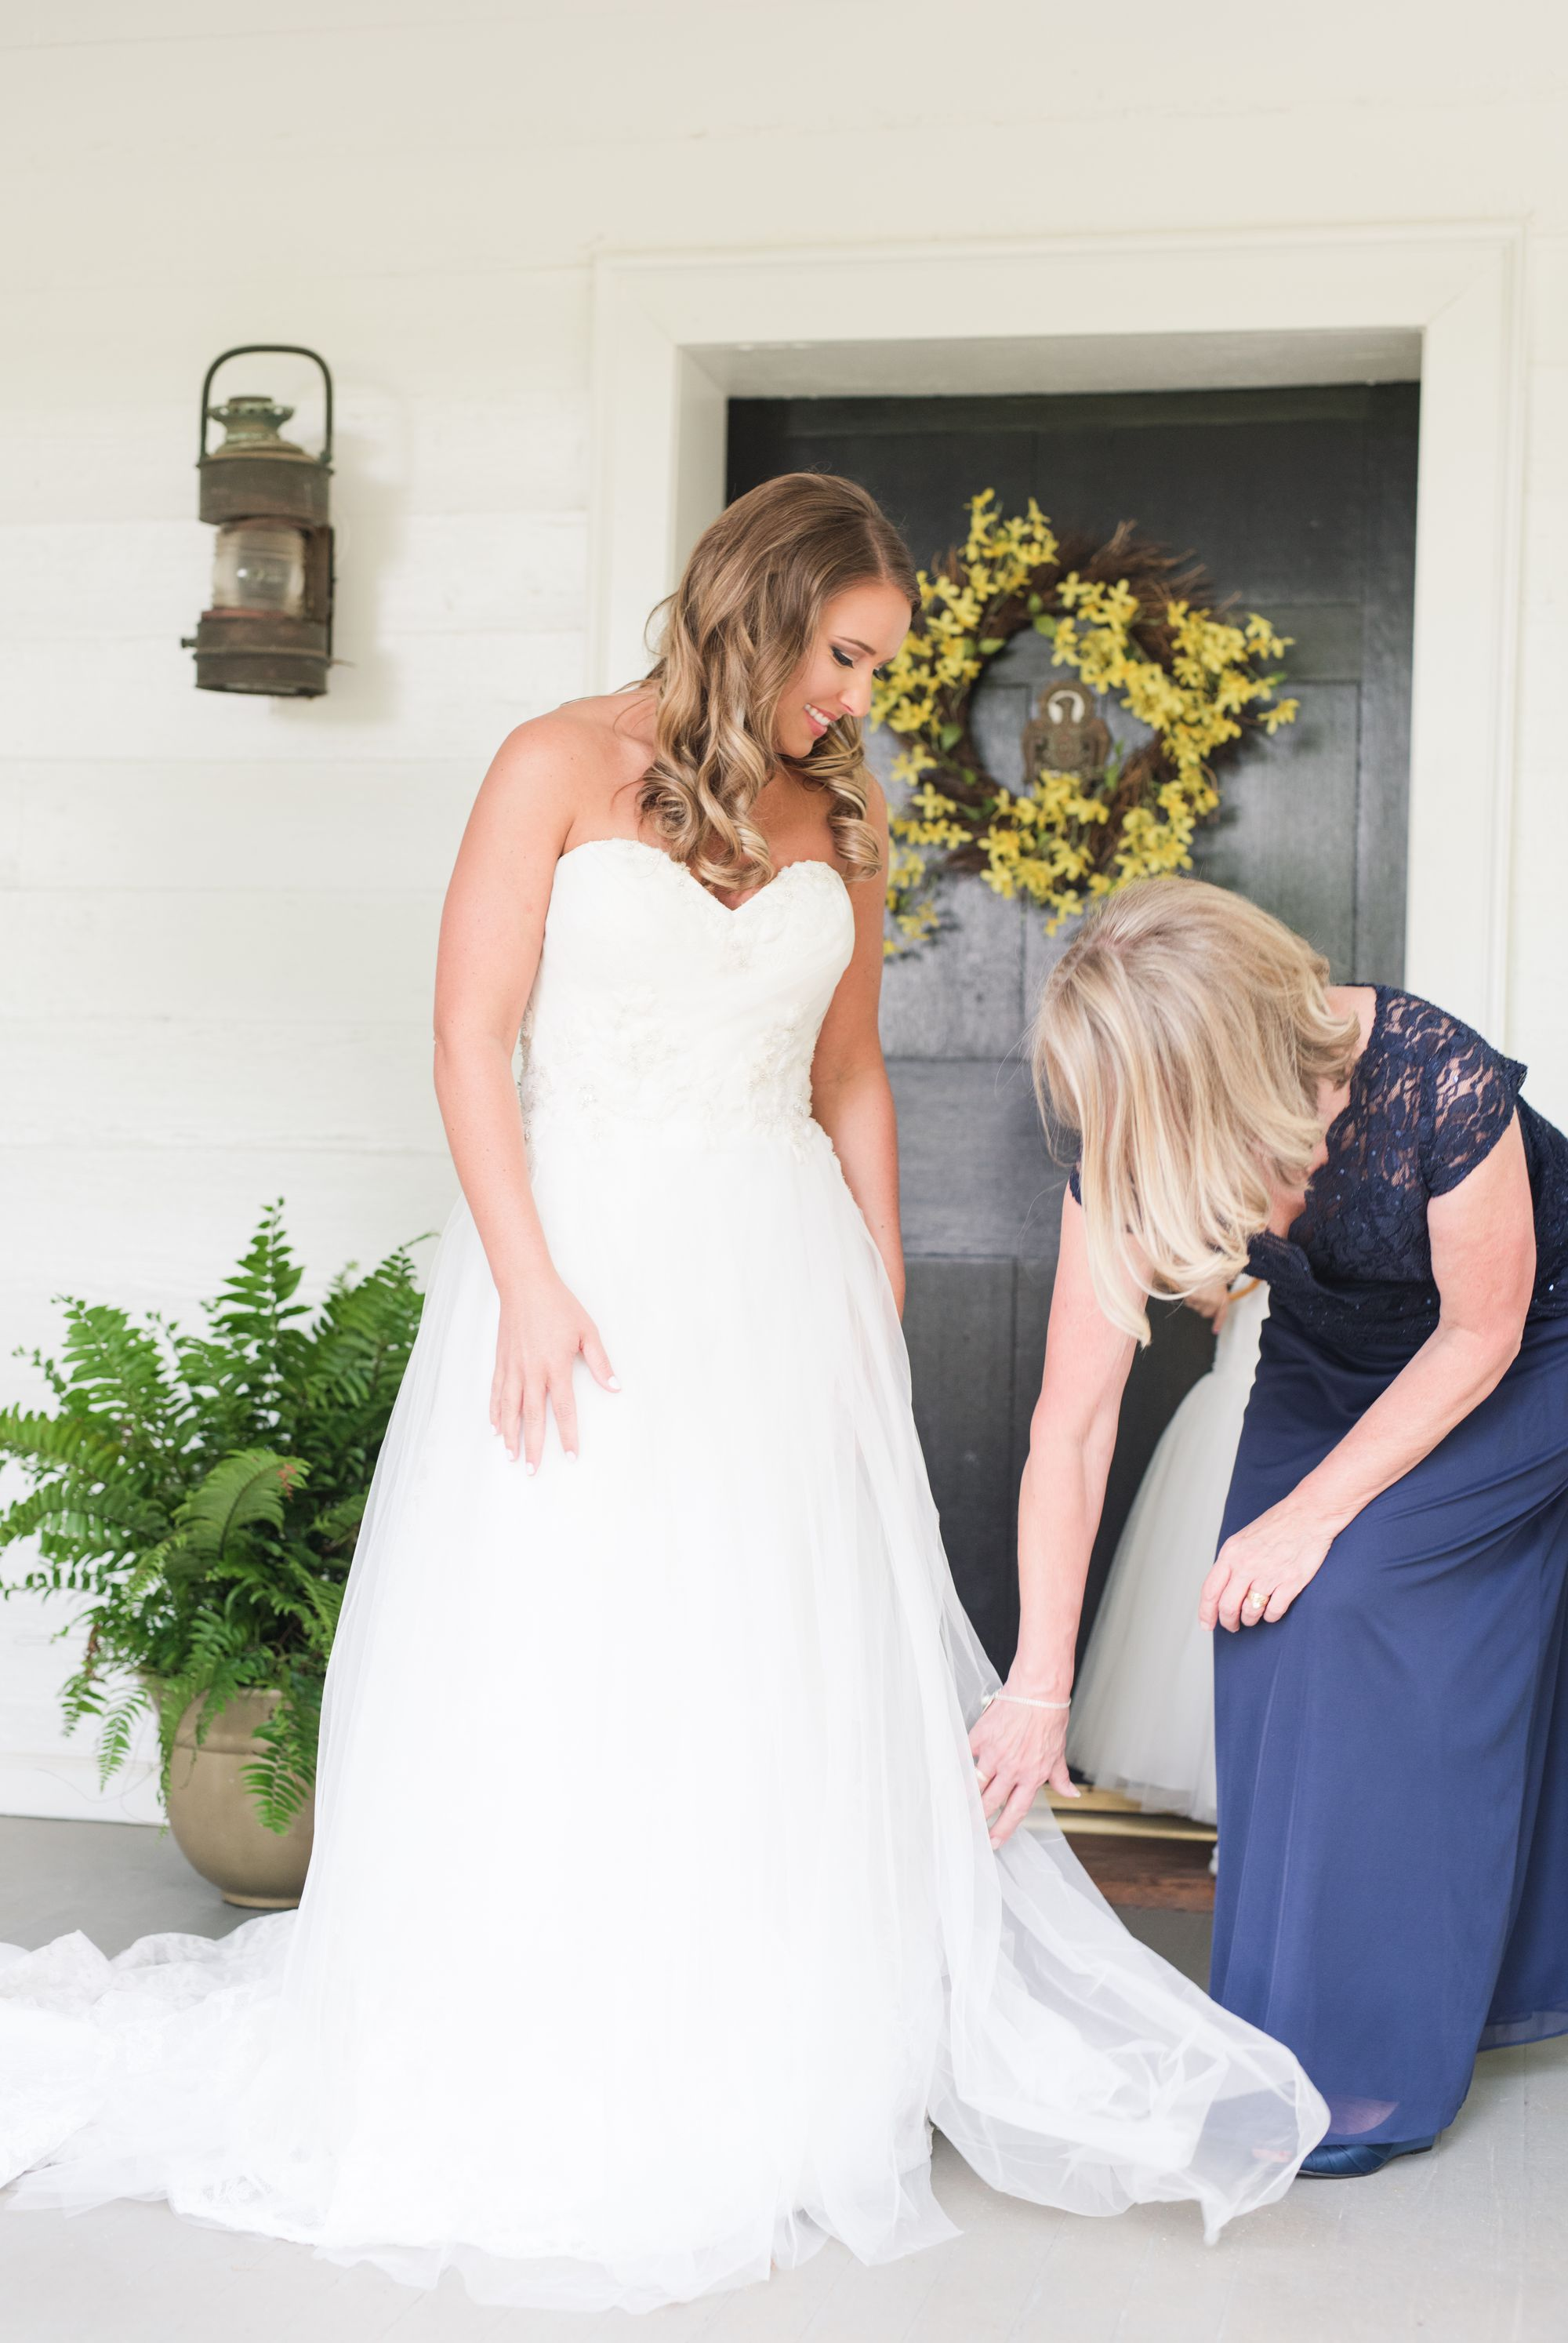 beaver-dam-house-davidson-nc-wedding-photos 15